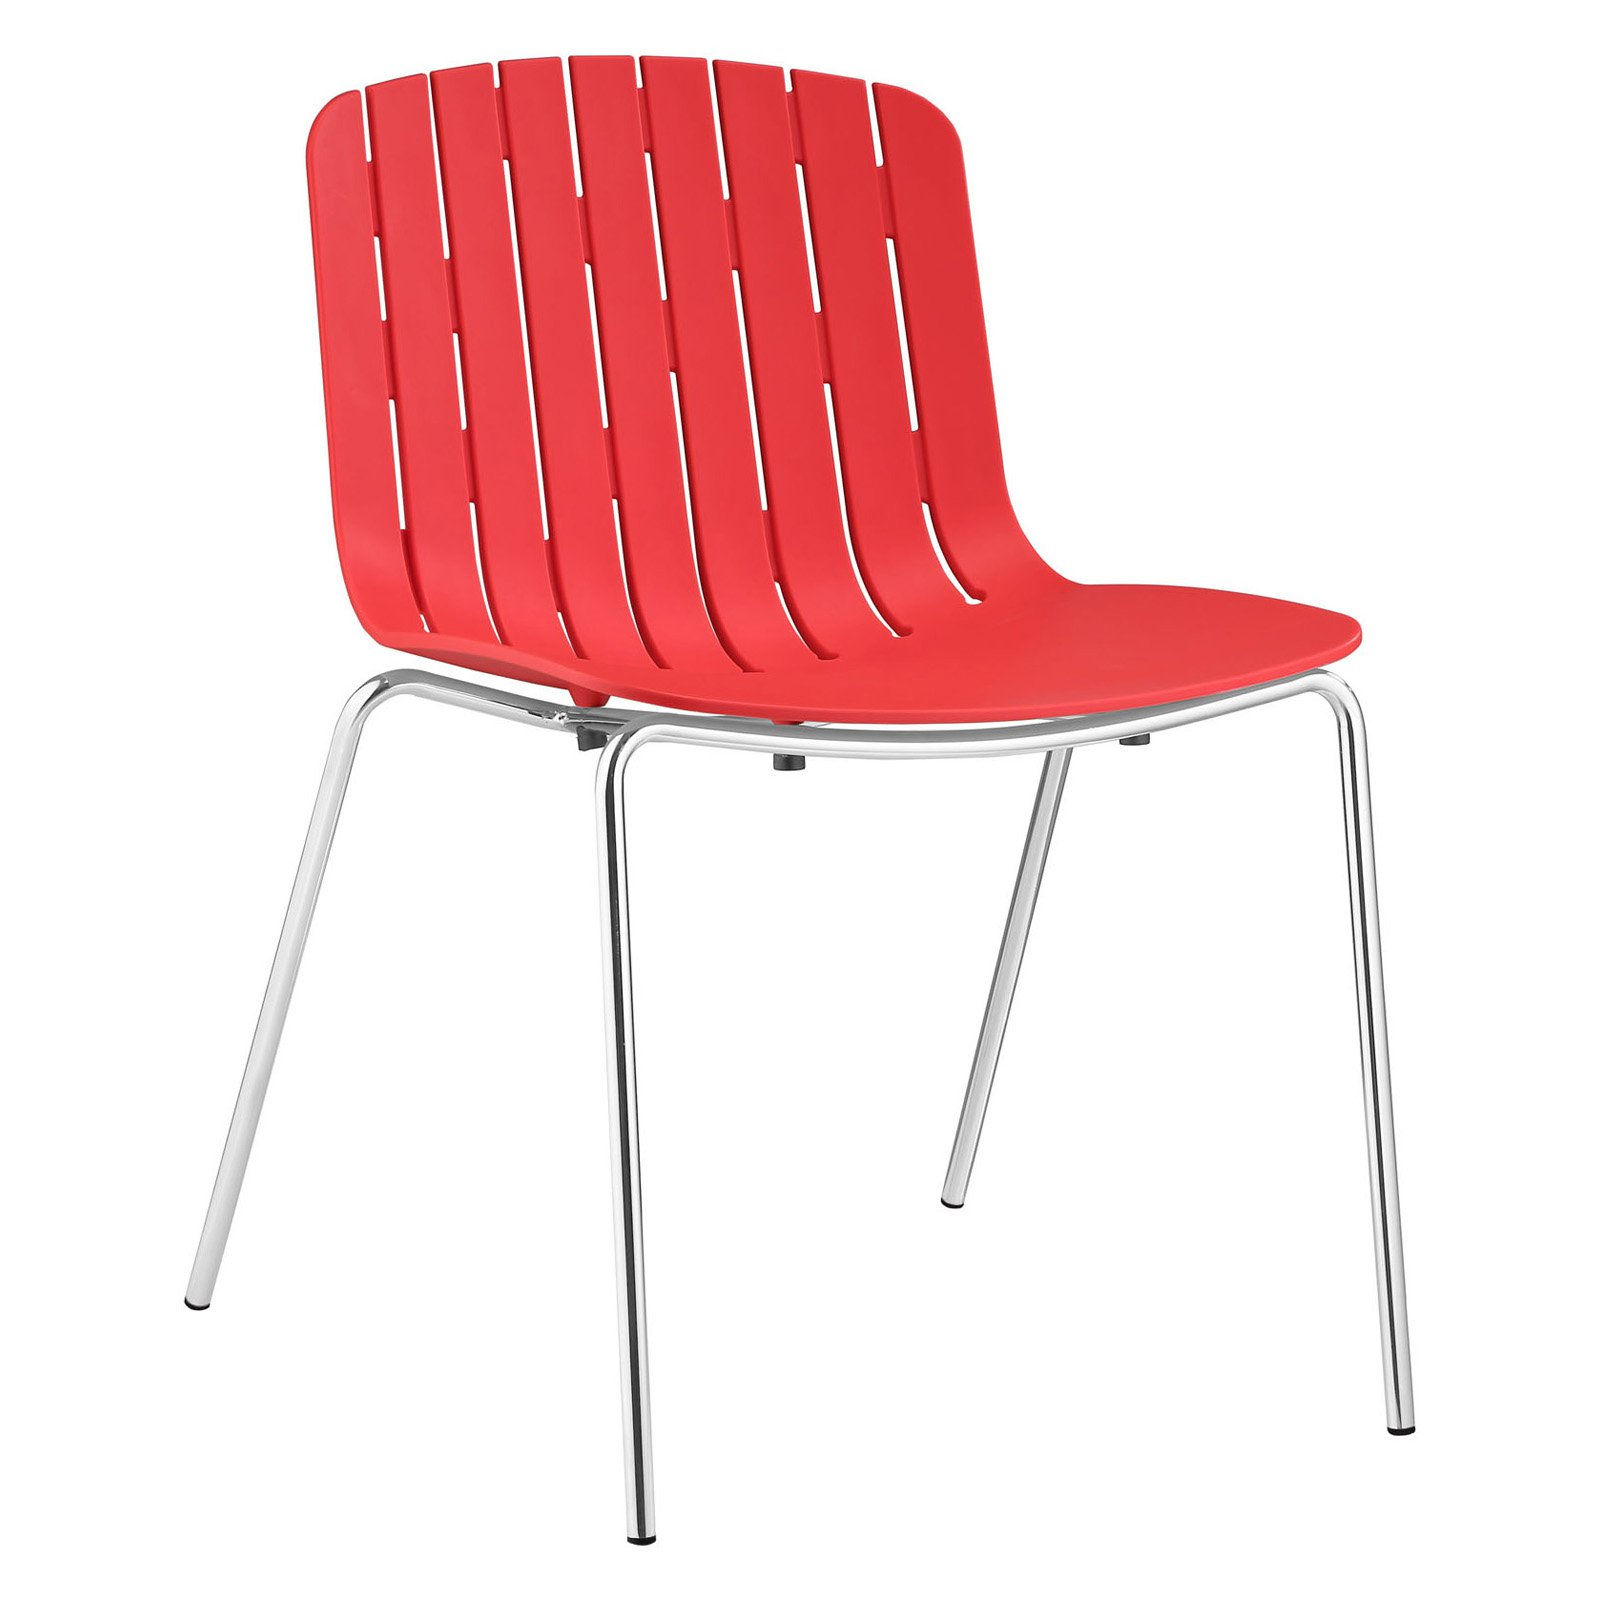 Modway Trace Dining Side Chair, Multiple Colors